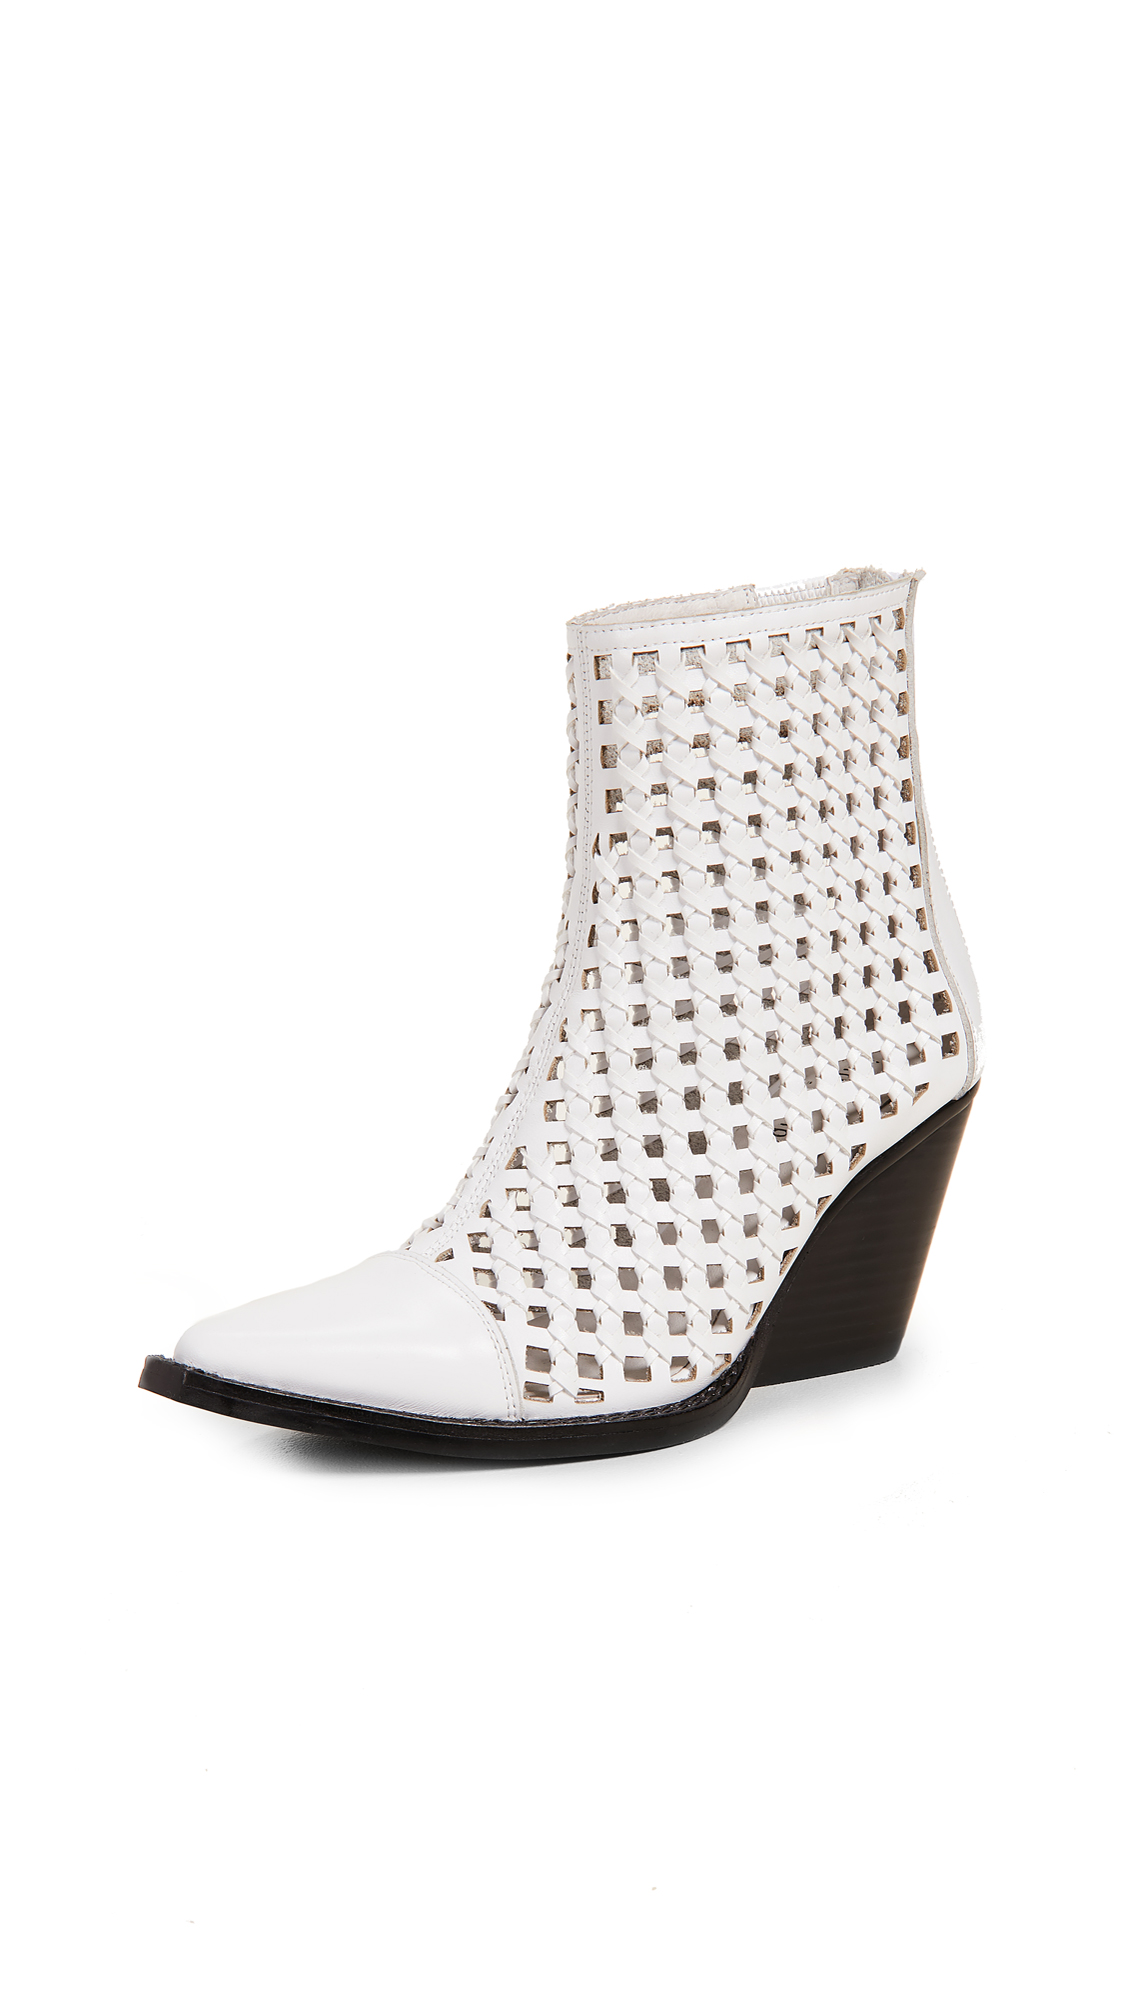 Jeffrey Campbell Waven Woven Boots - White